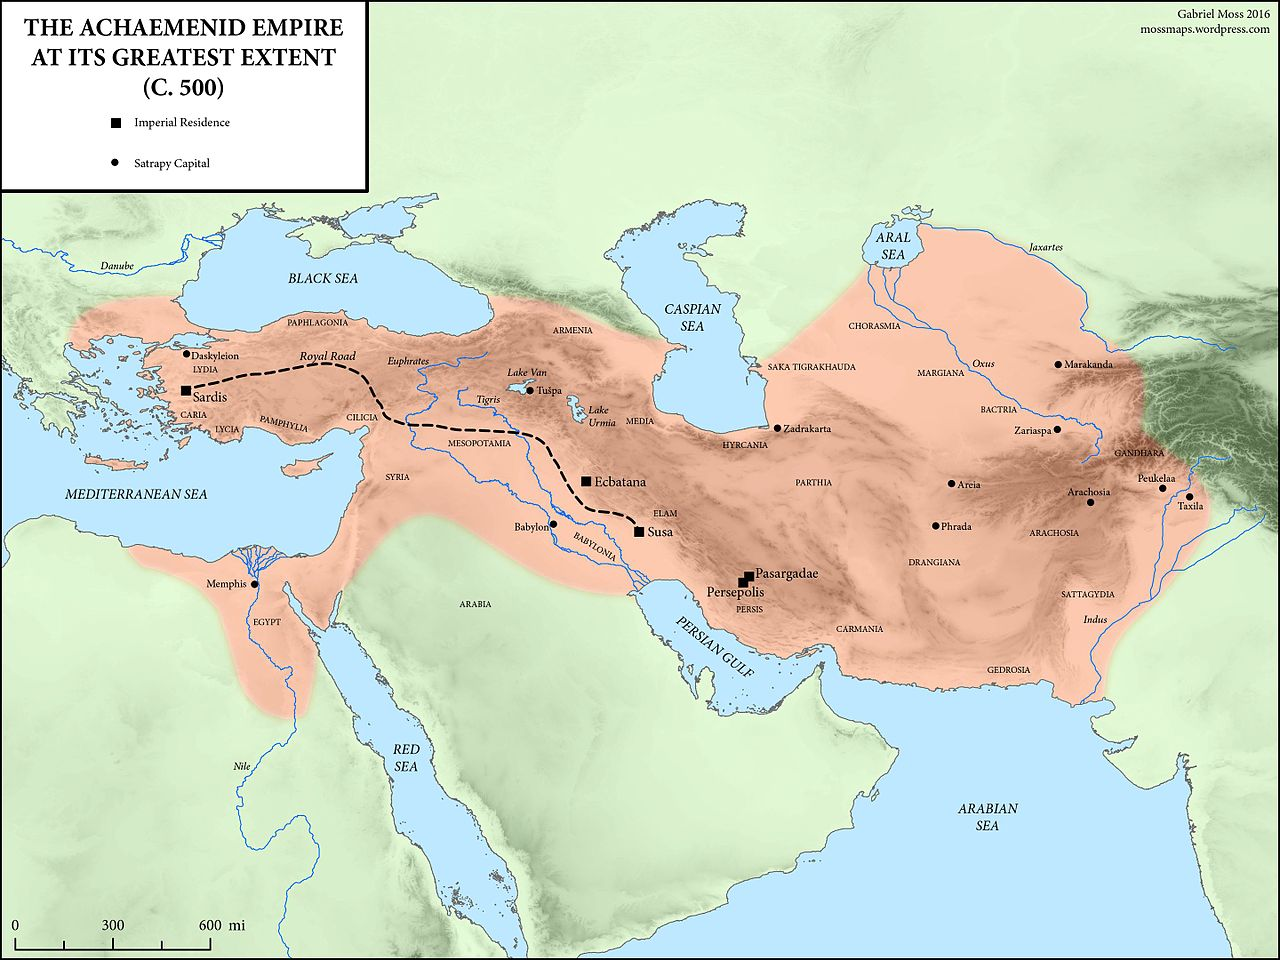 A map of the Achaemenid Persian empire at its greatest extent, during the reign of Darius I around 500 BC